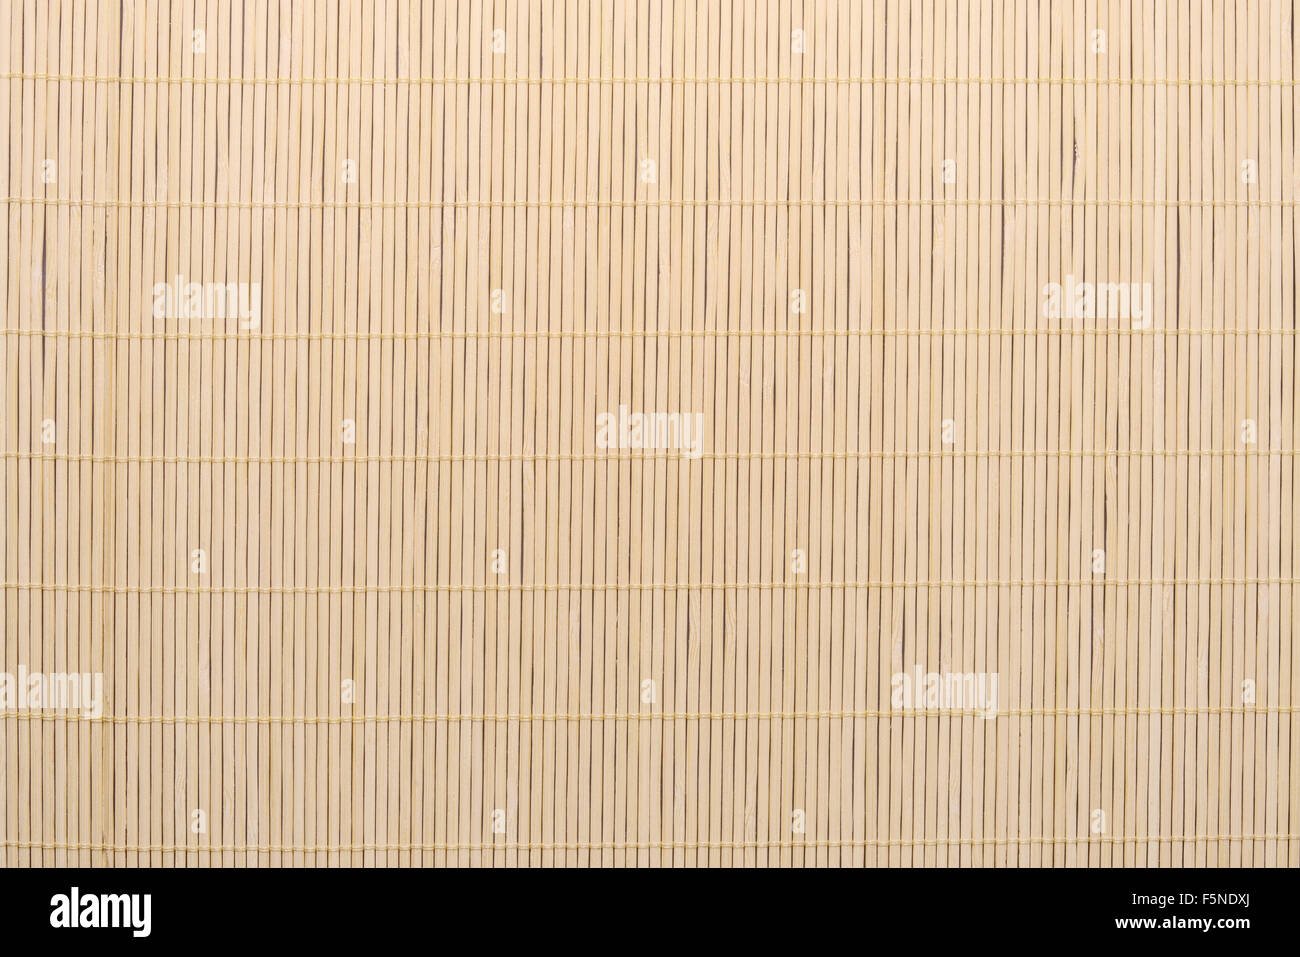 Bamboo fine tablecloth background texture. Striped wallpaper. - Stock Image